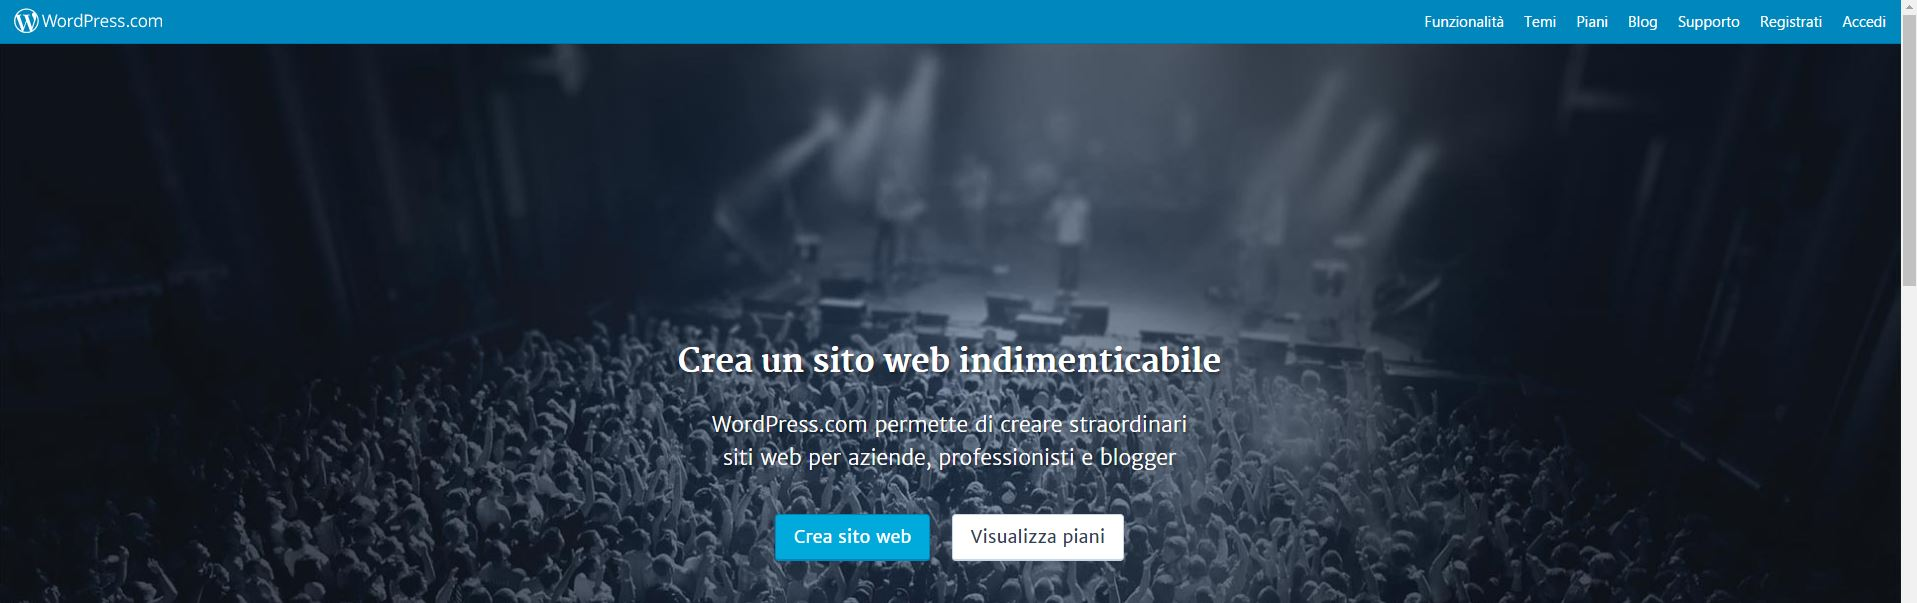 wordpress.com-panoramica